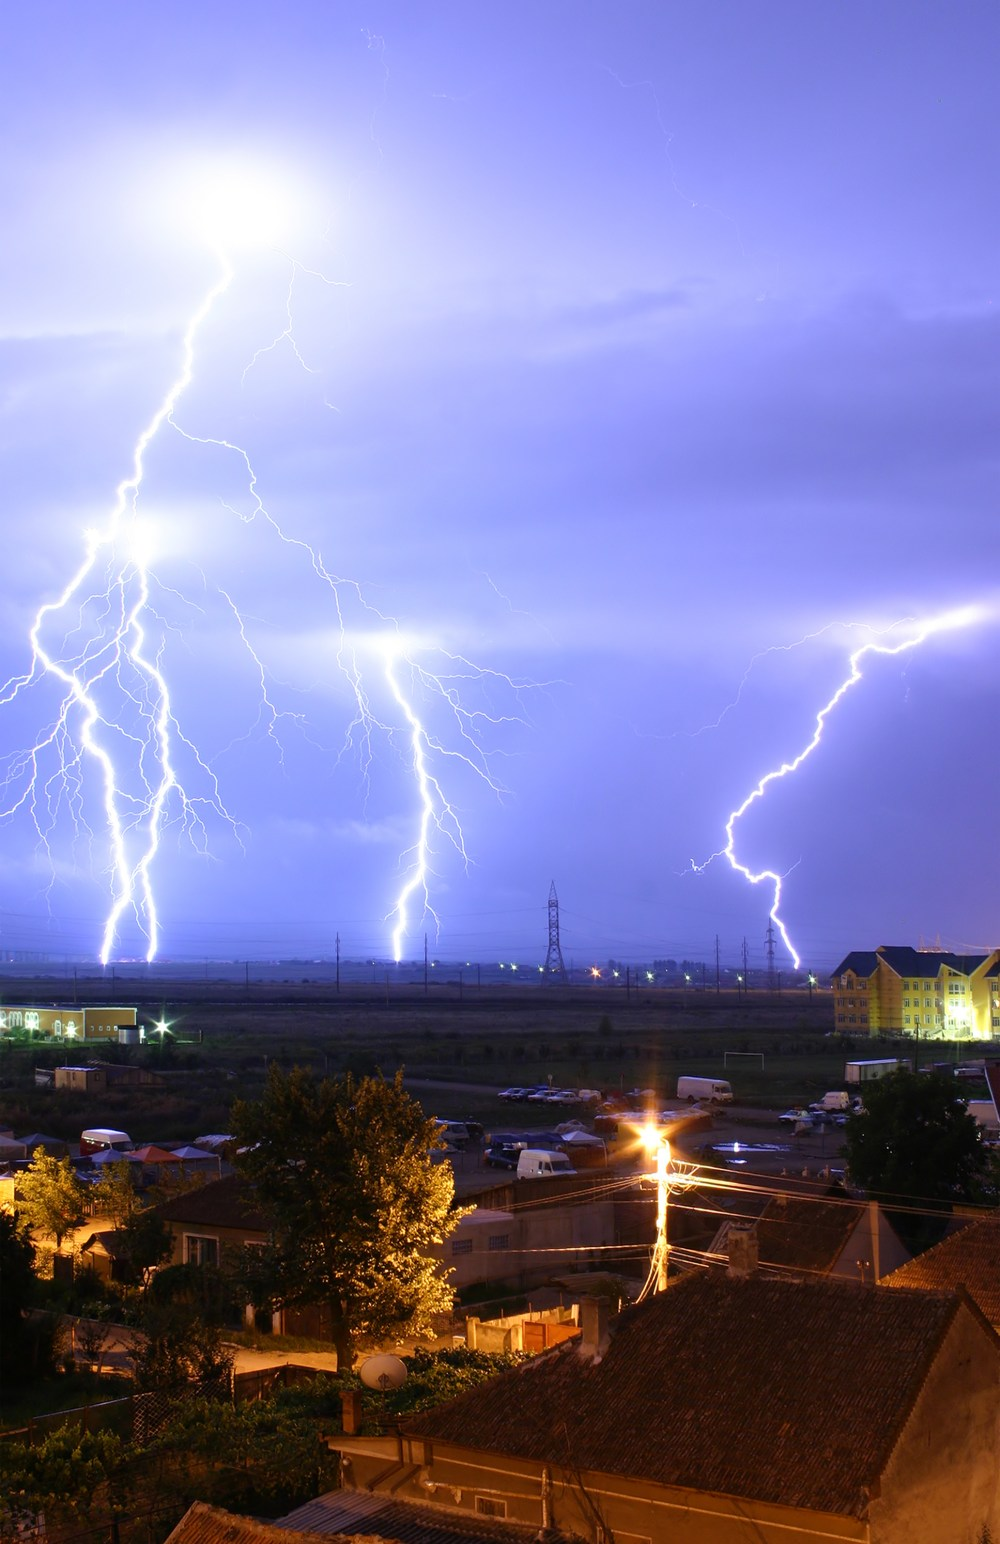 medium resolution of strokes of cloud to ground lightning during a thunderstorm